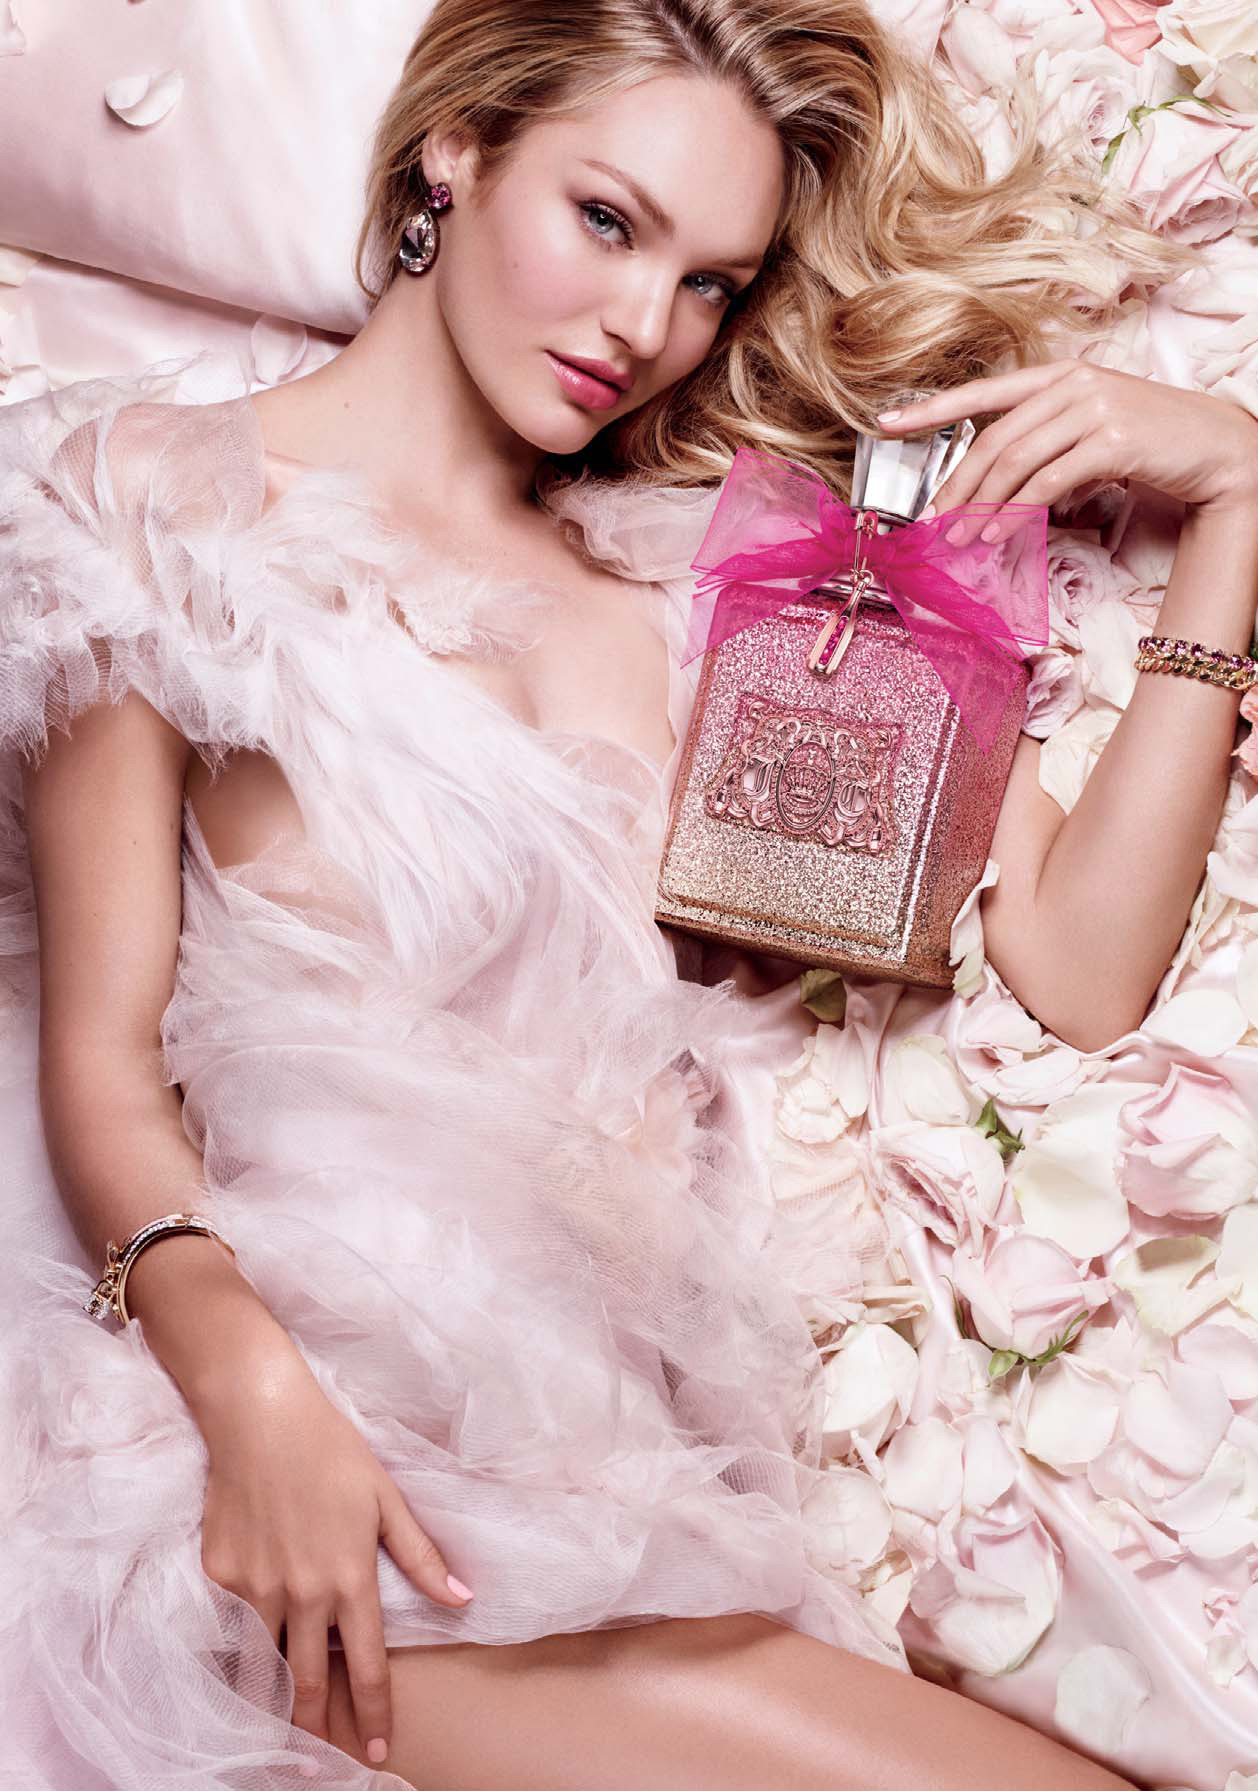 Viva la Juicy Rosé, de Juicy Couture